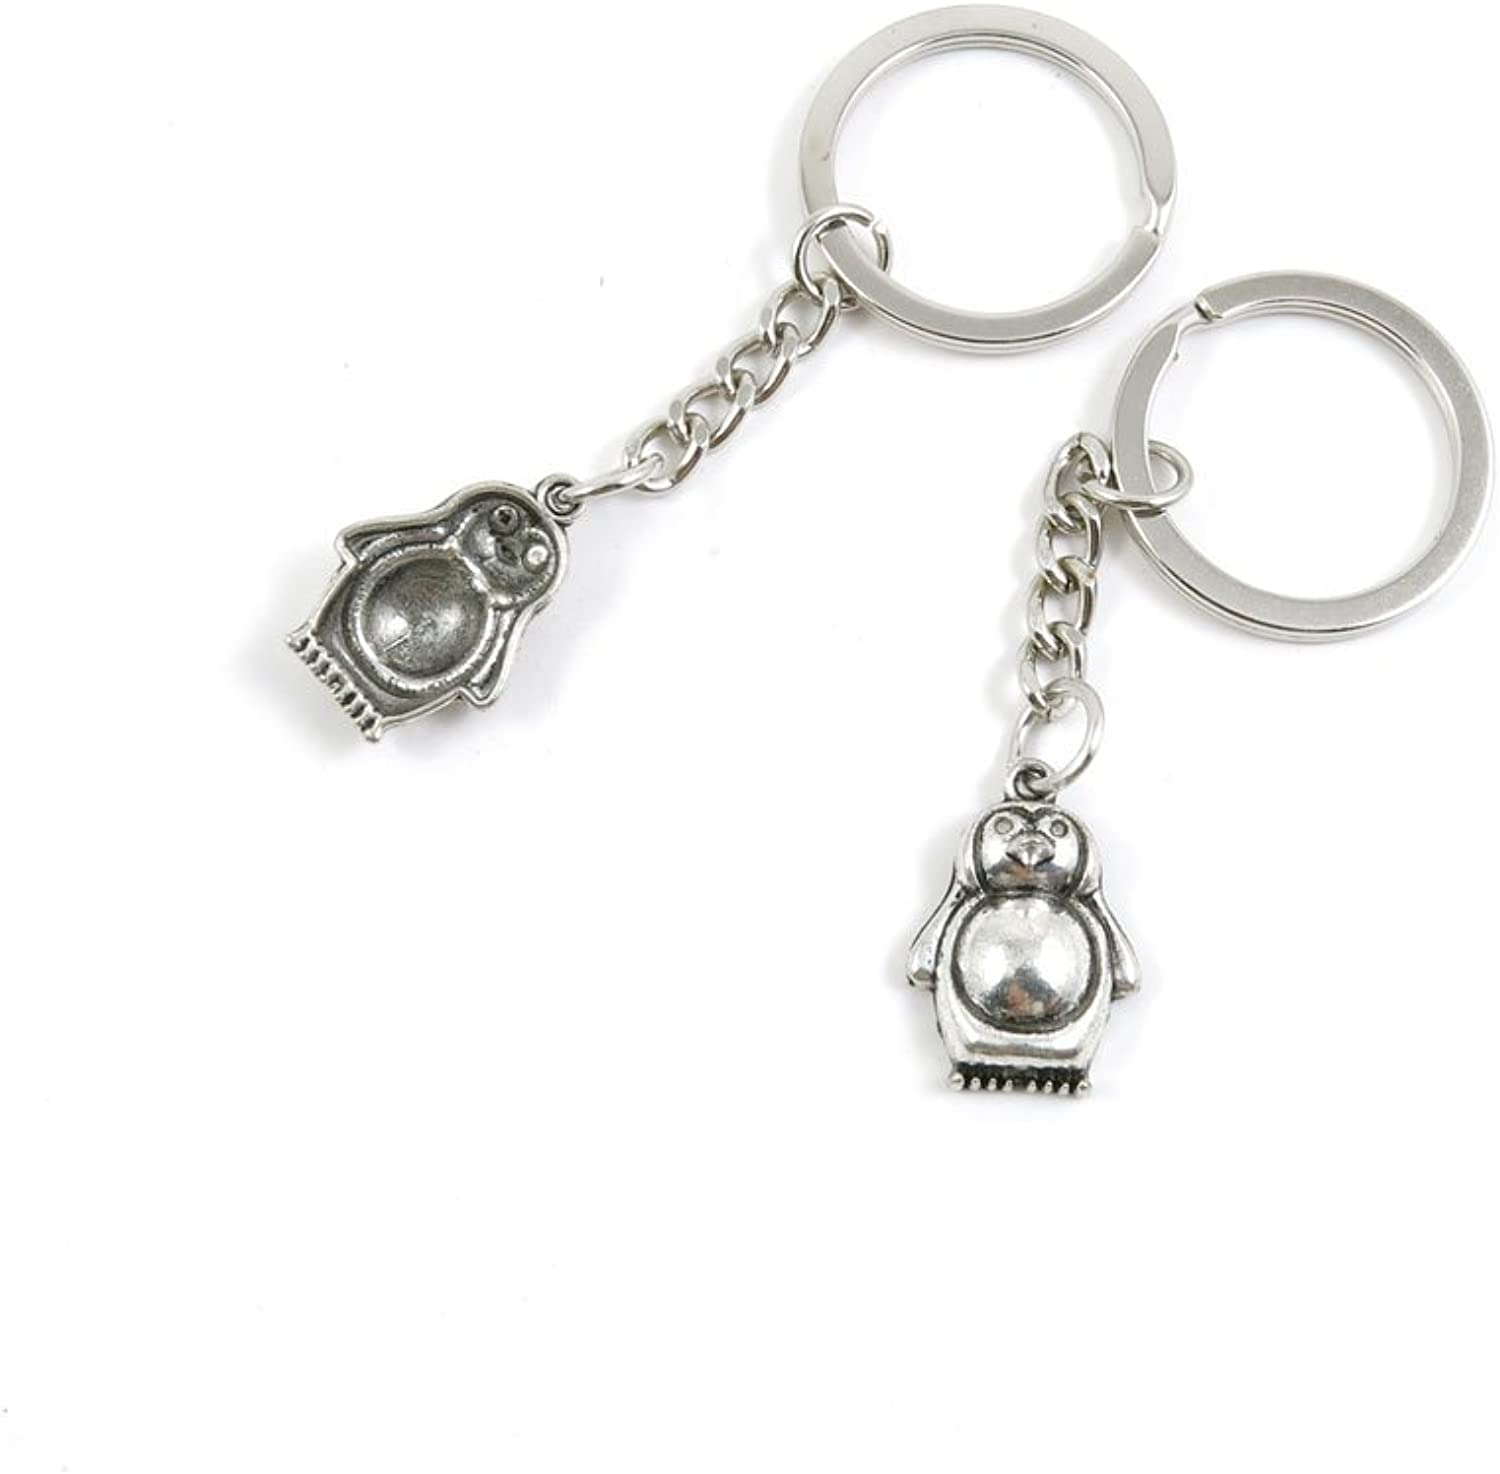 210 Pieces Fashion Jewelry Keyring Keychain Door Car Key Tag Ring Chain Supplier Supply Wholesale Bulk Lots Z2IN1 Penguin